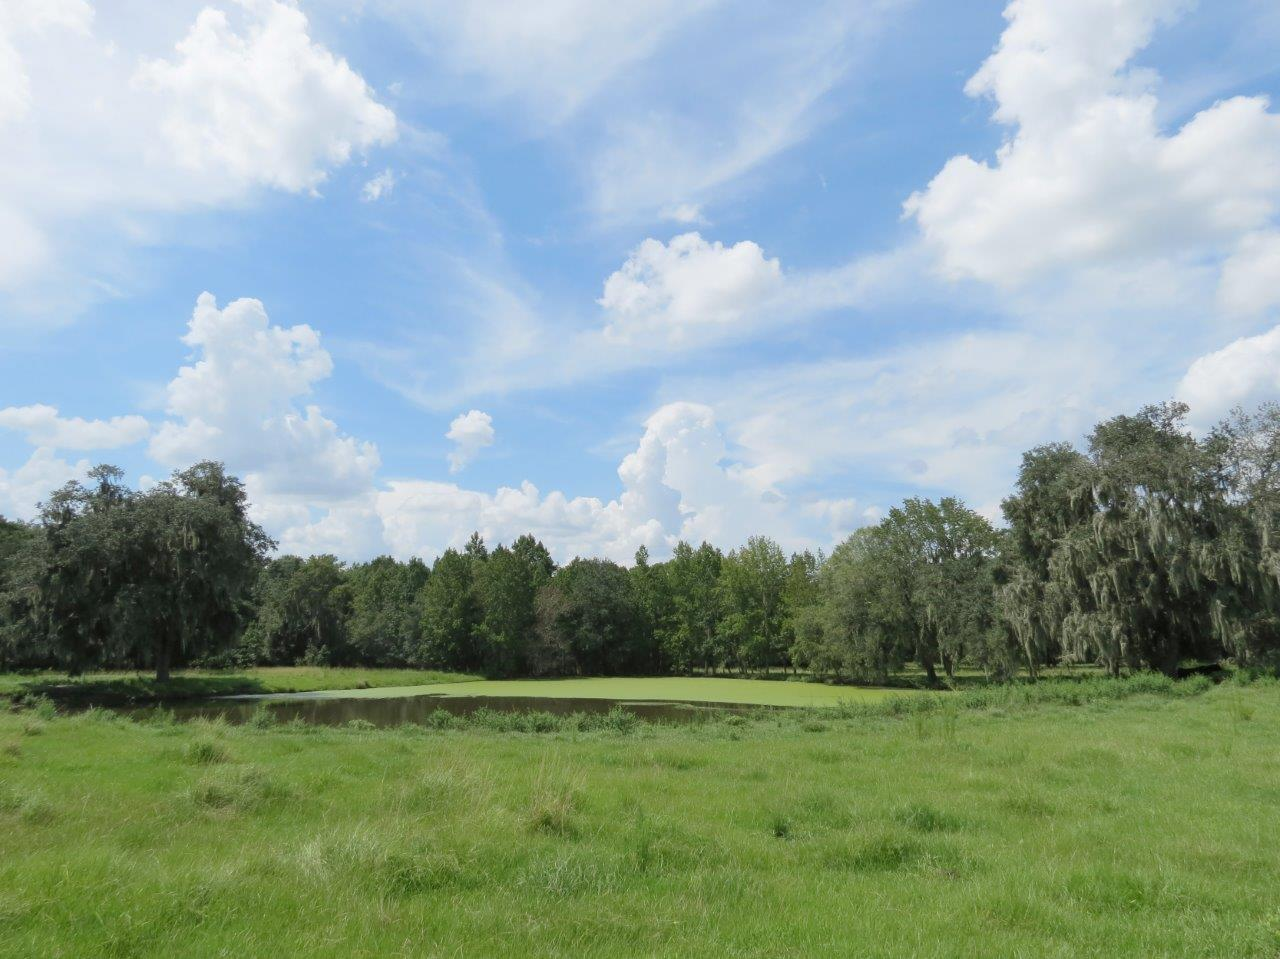 Southwood Oaks Homesite & Pasture 47 Acres in Lithia, FL